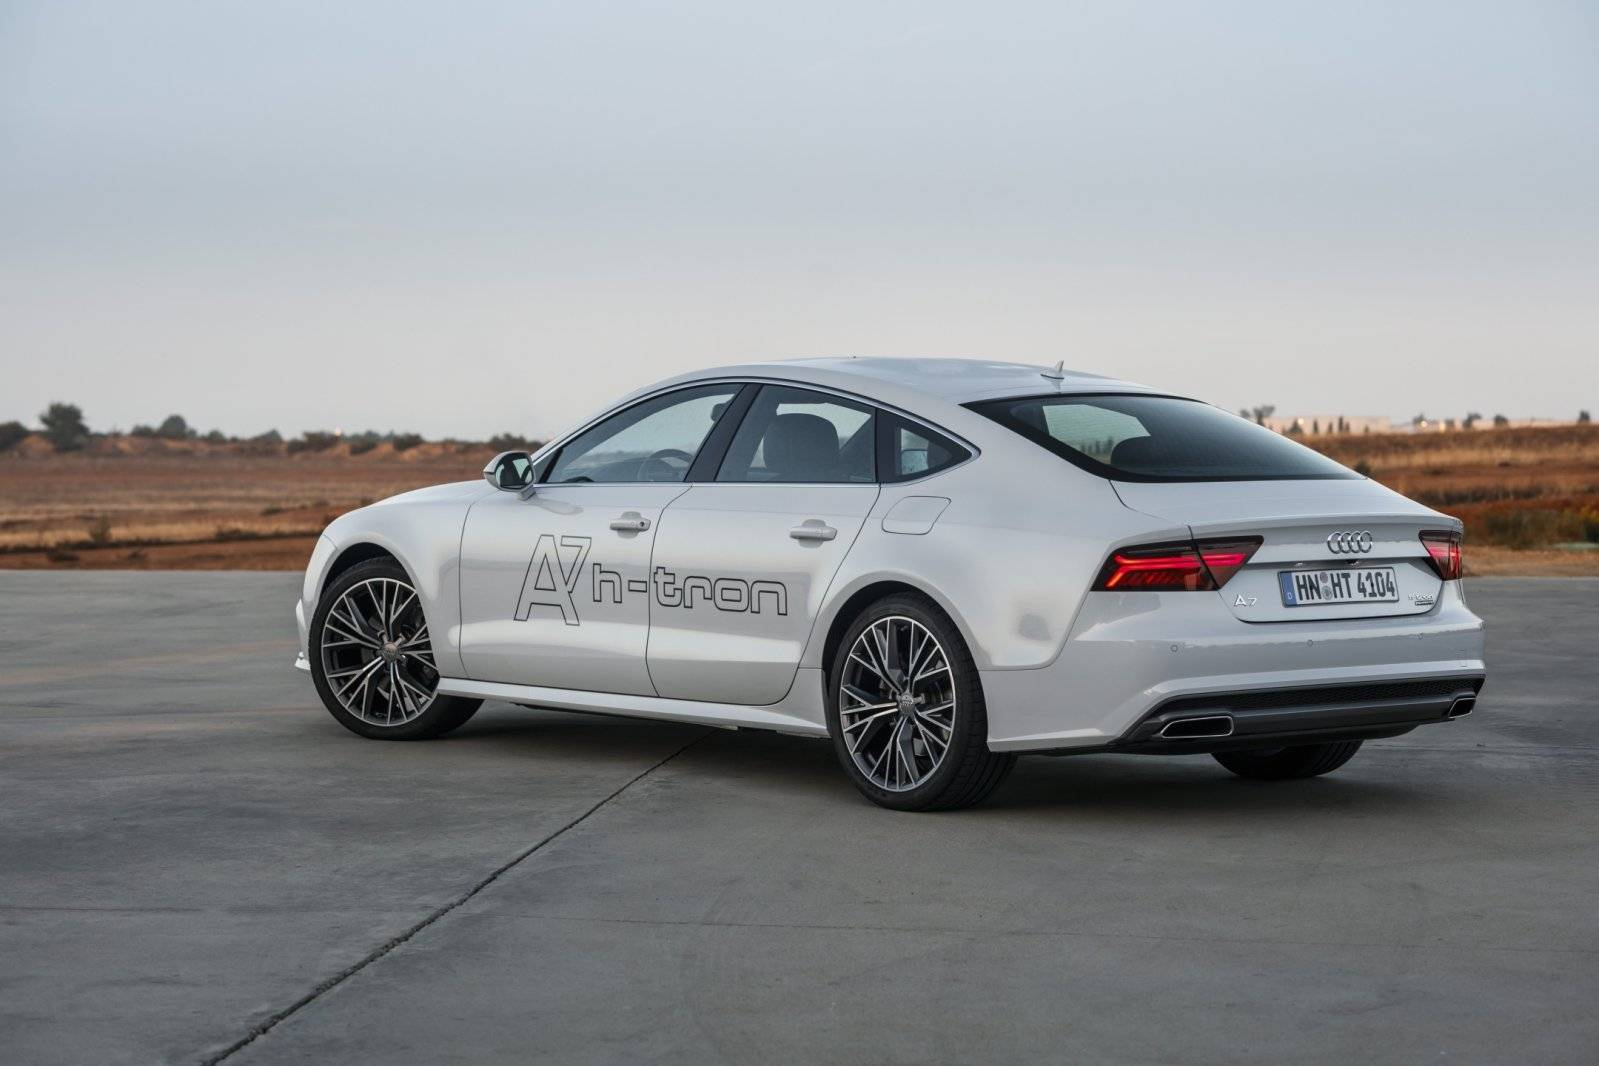 Audi A7 Lease >> Test: Gereden | Audi A7 h-tron quattro (op waterstof ...